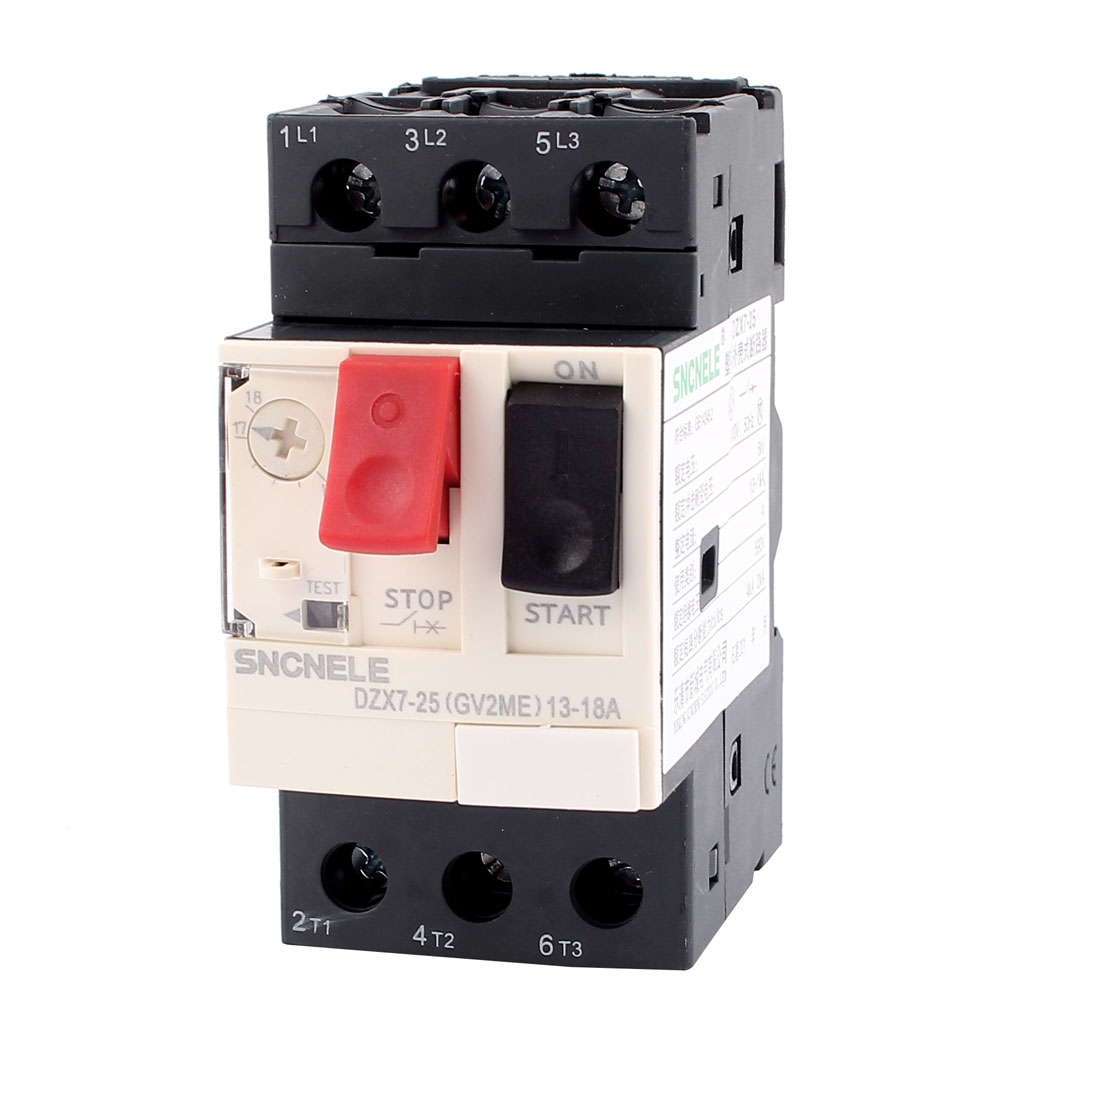 3 Phase DZX7-25 ON/OFF Button Black Starting NO+NC Motor Circuit Breaker 13~18A